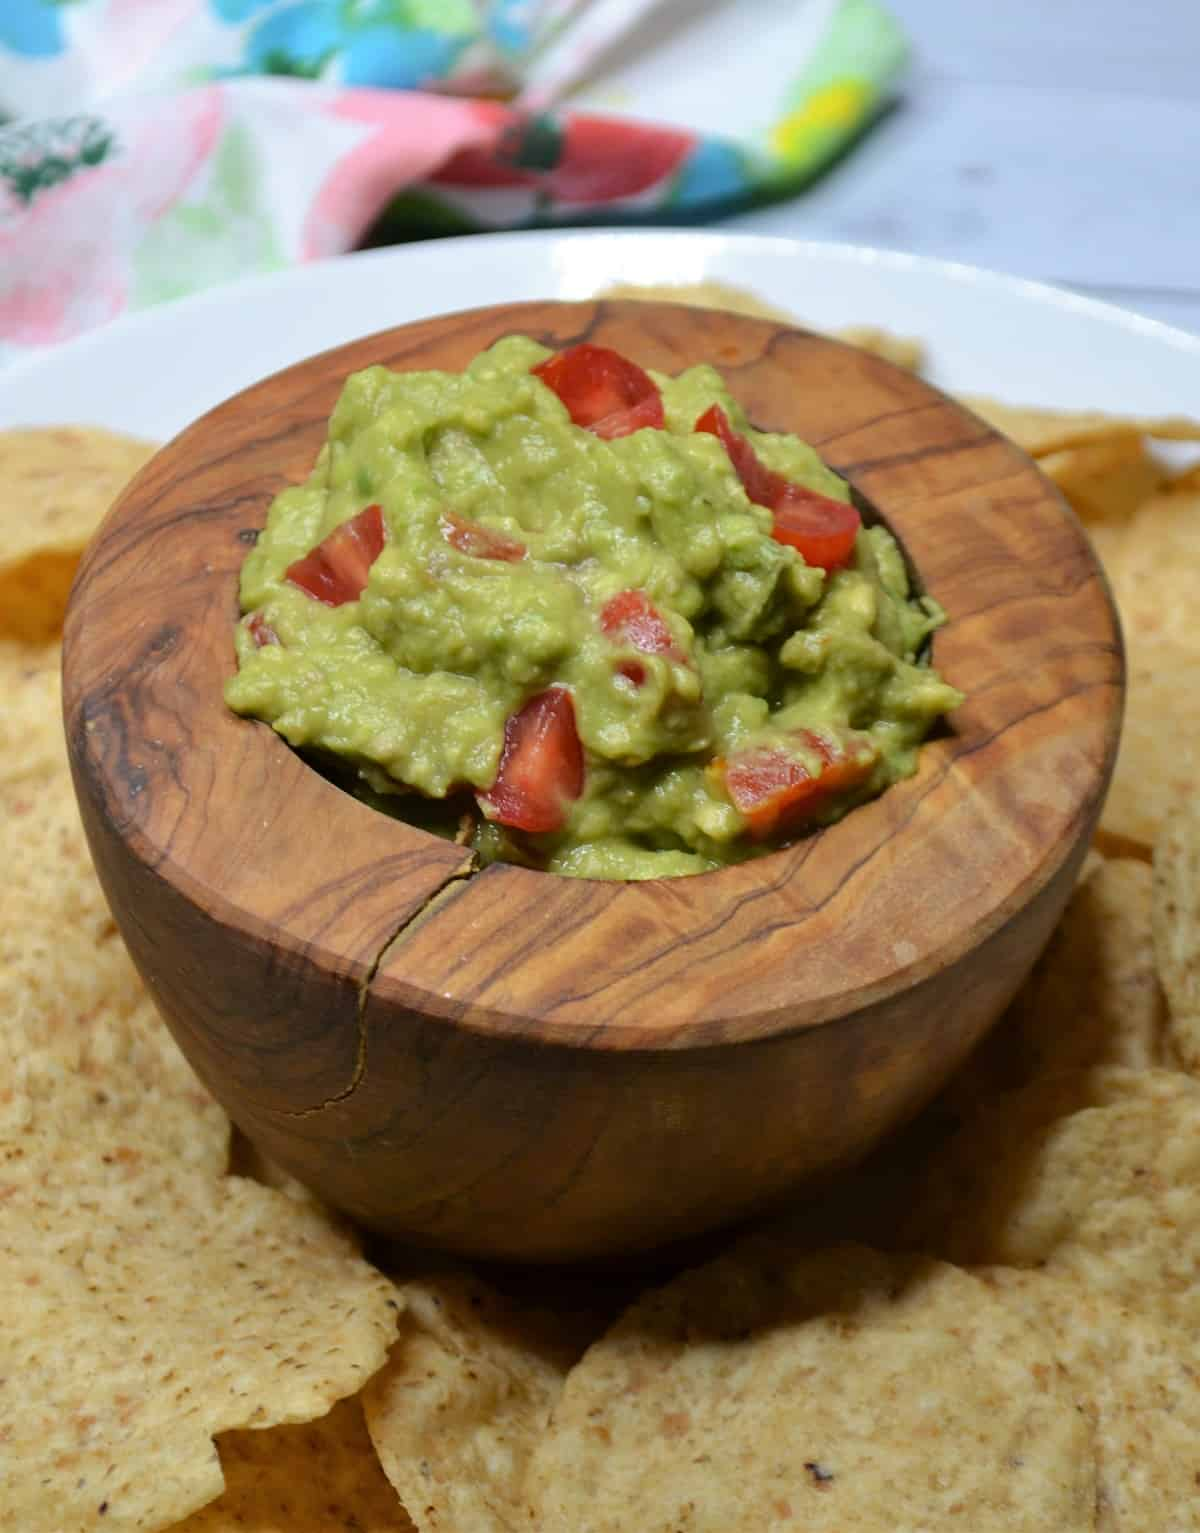 This Guacamole is an easy appetizer to make!